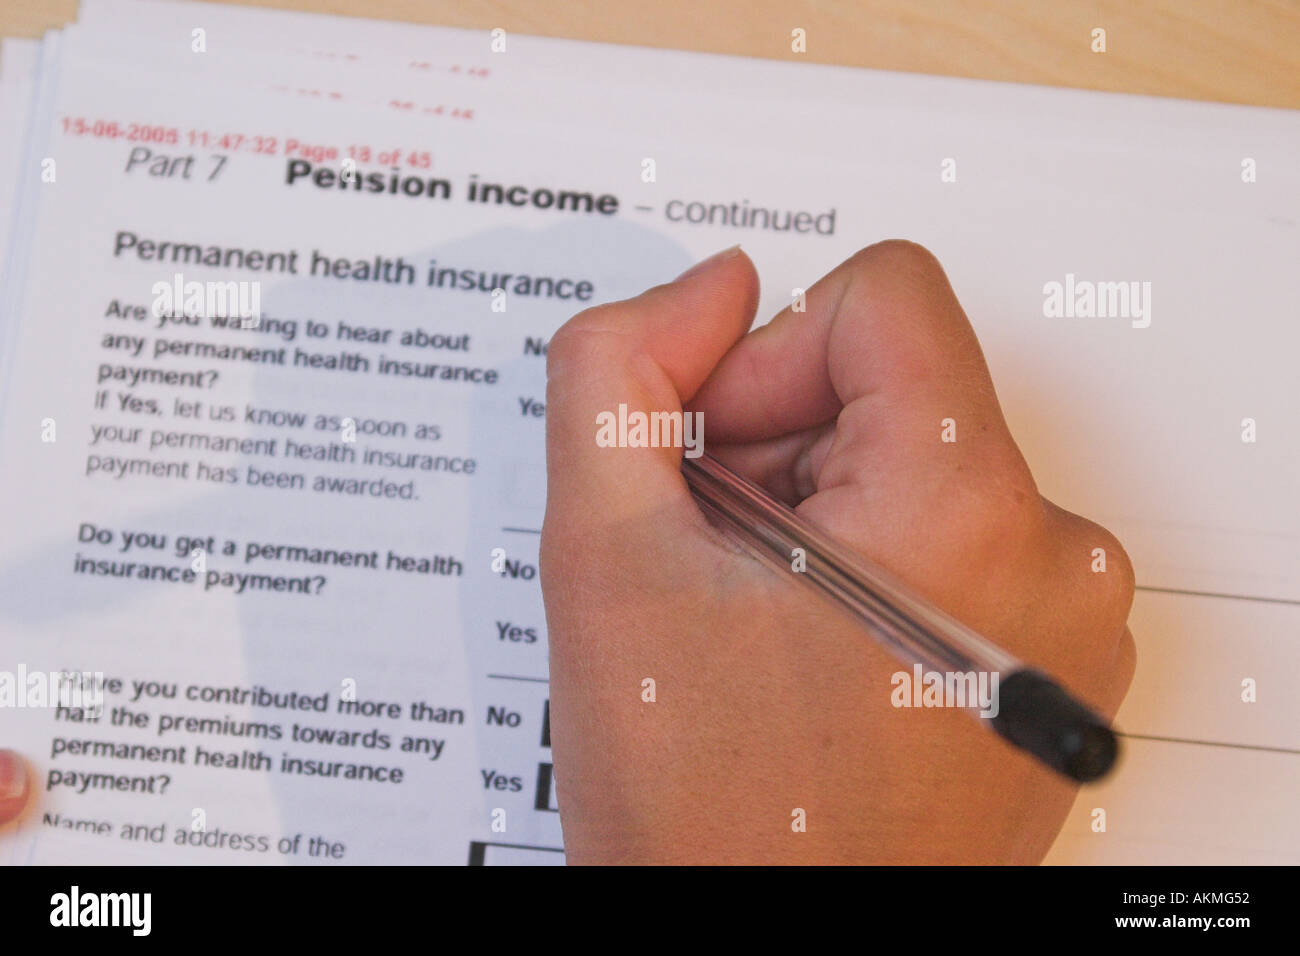 Lady filling out a Health Insurance form to claim income benefits from the government - Stock Image